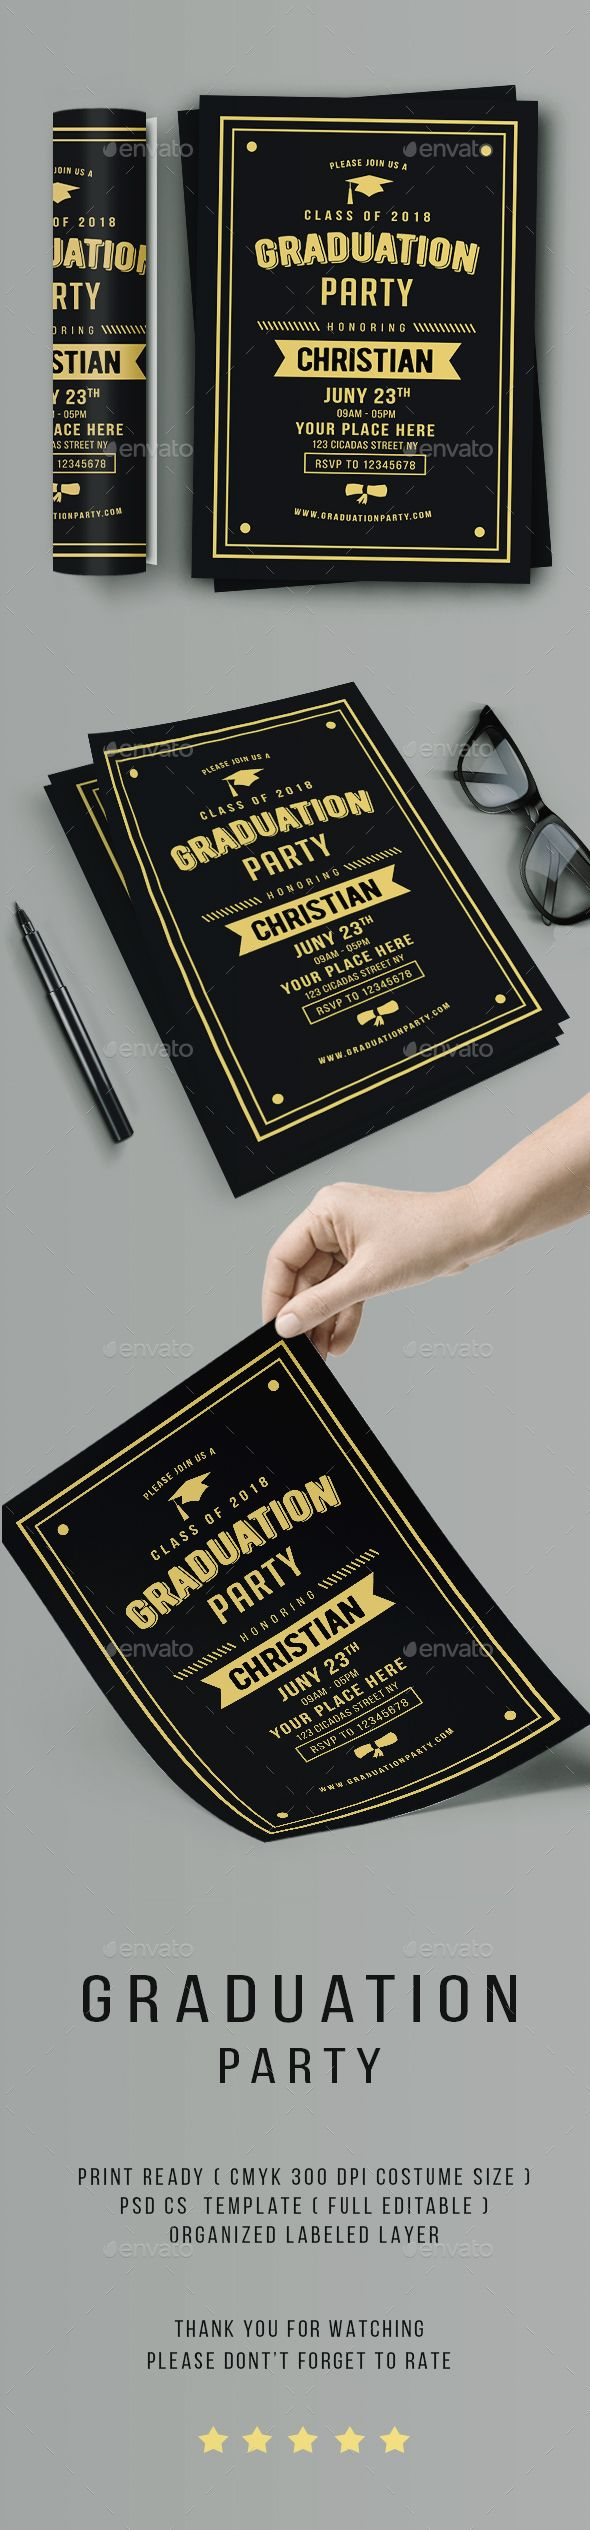 Vintage Graduation Invitation | Vintage, Font logo and Card templates